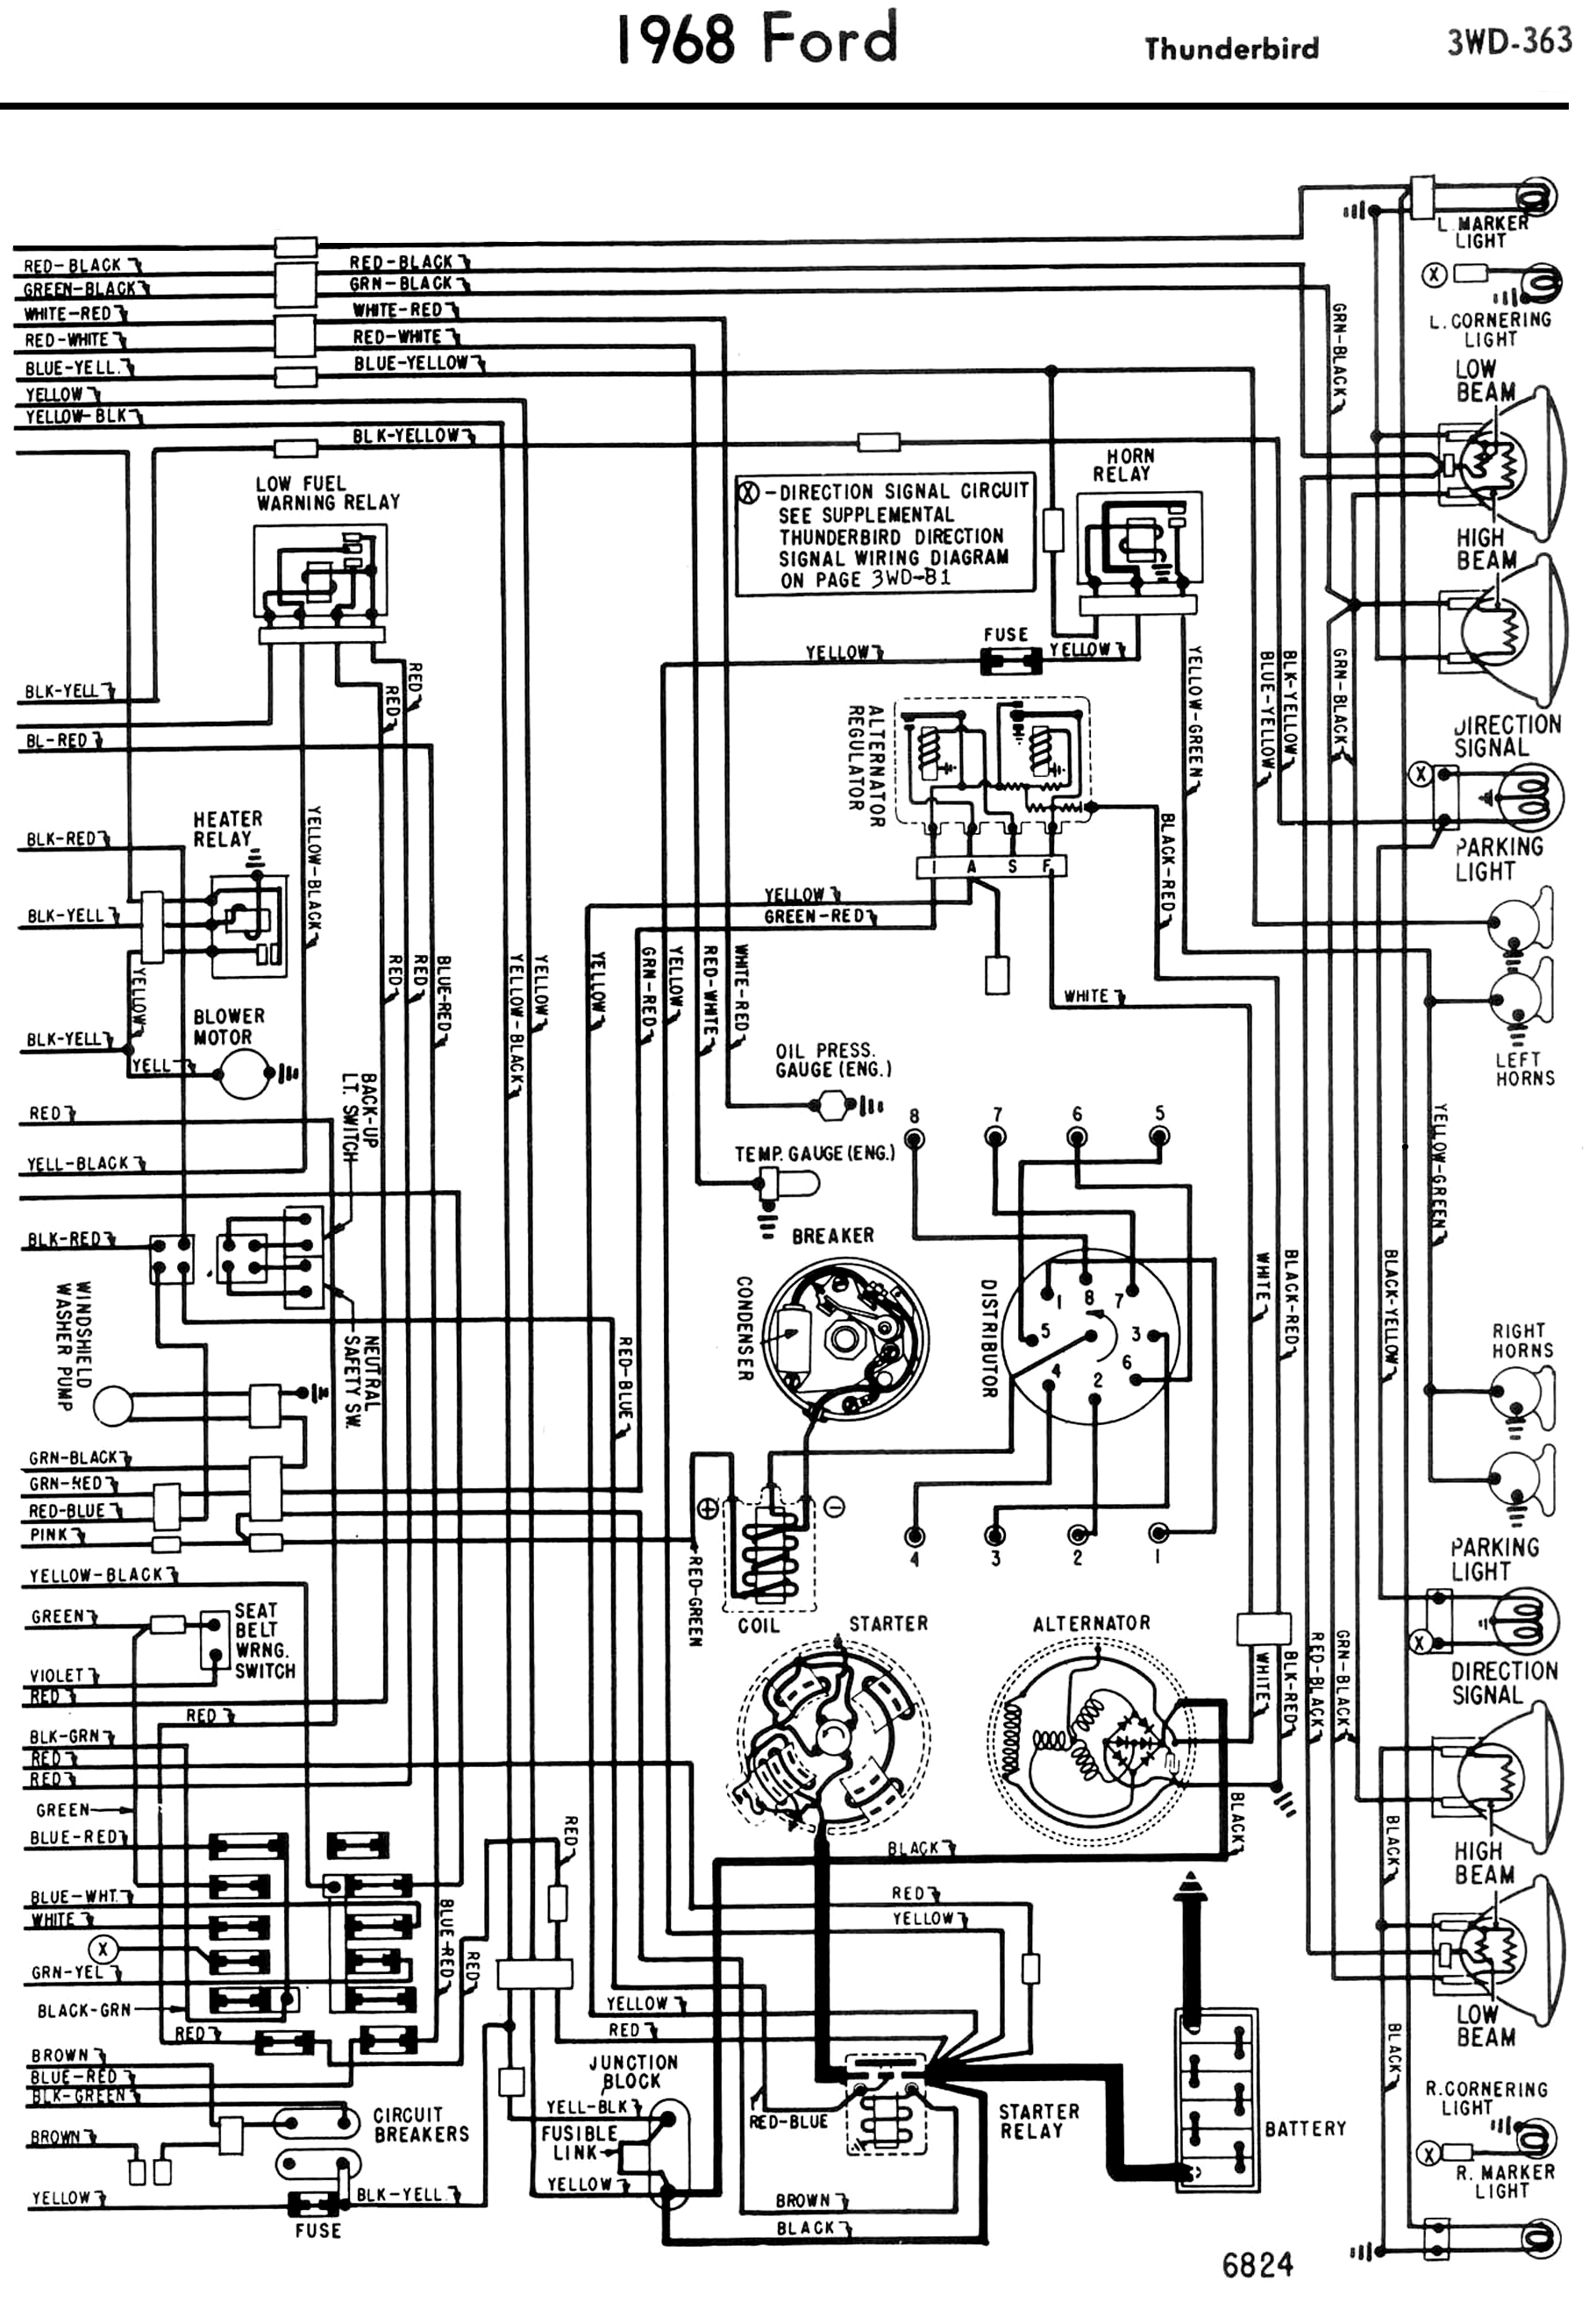 68_wiring_diagram RH 1958 68 ford electrical schematics 1965 thunderbird wiring harness at bakdesigns.co